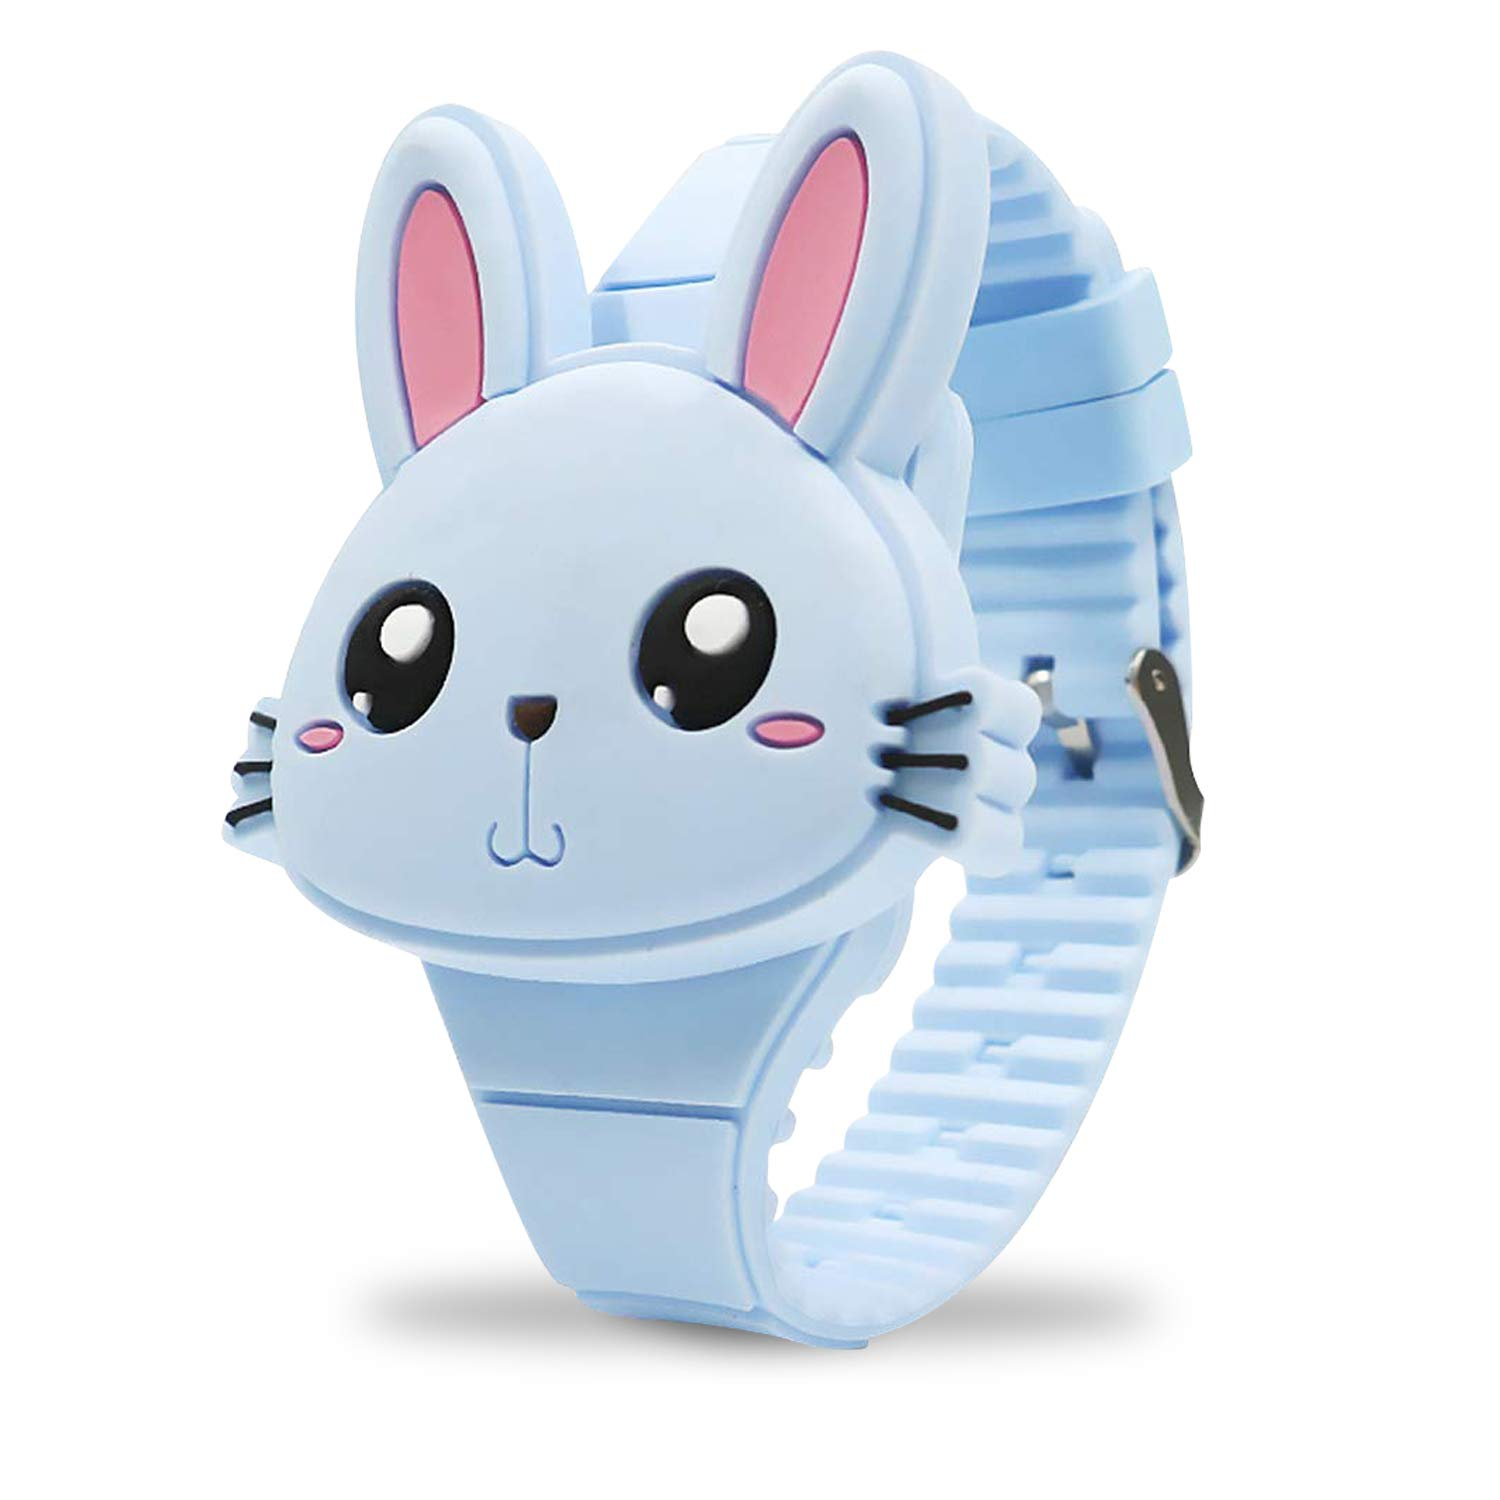 Girls Watches for Kids, Cute Pink Rabbit Cartoon Shape Clamshell Design Digital Led Toys Bunny Watch Birthday Gift for Little Girls Boys